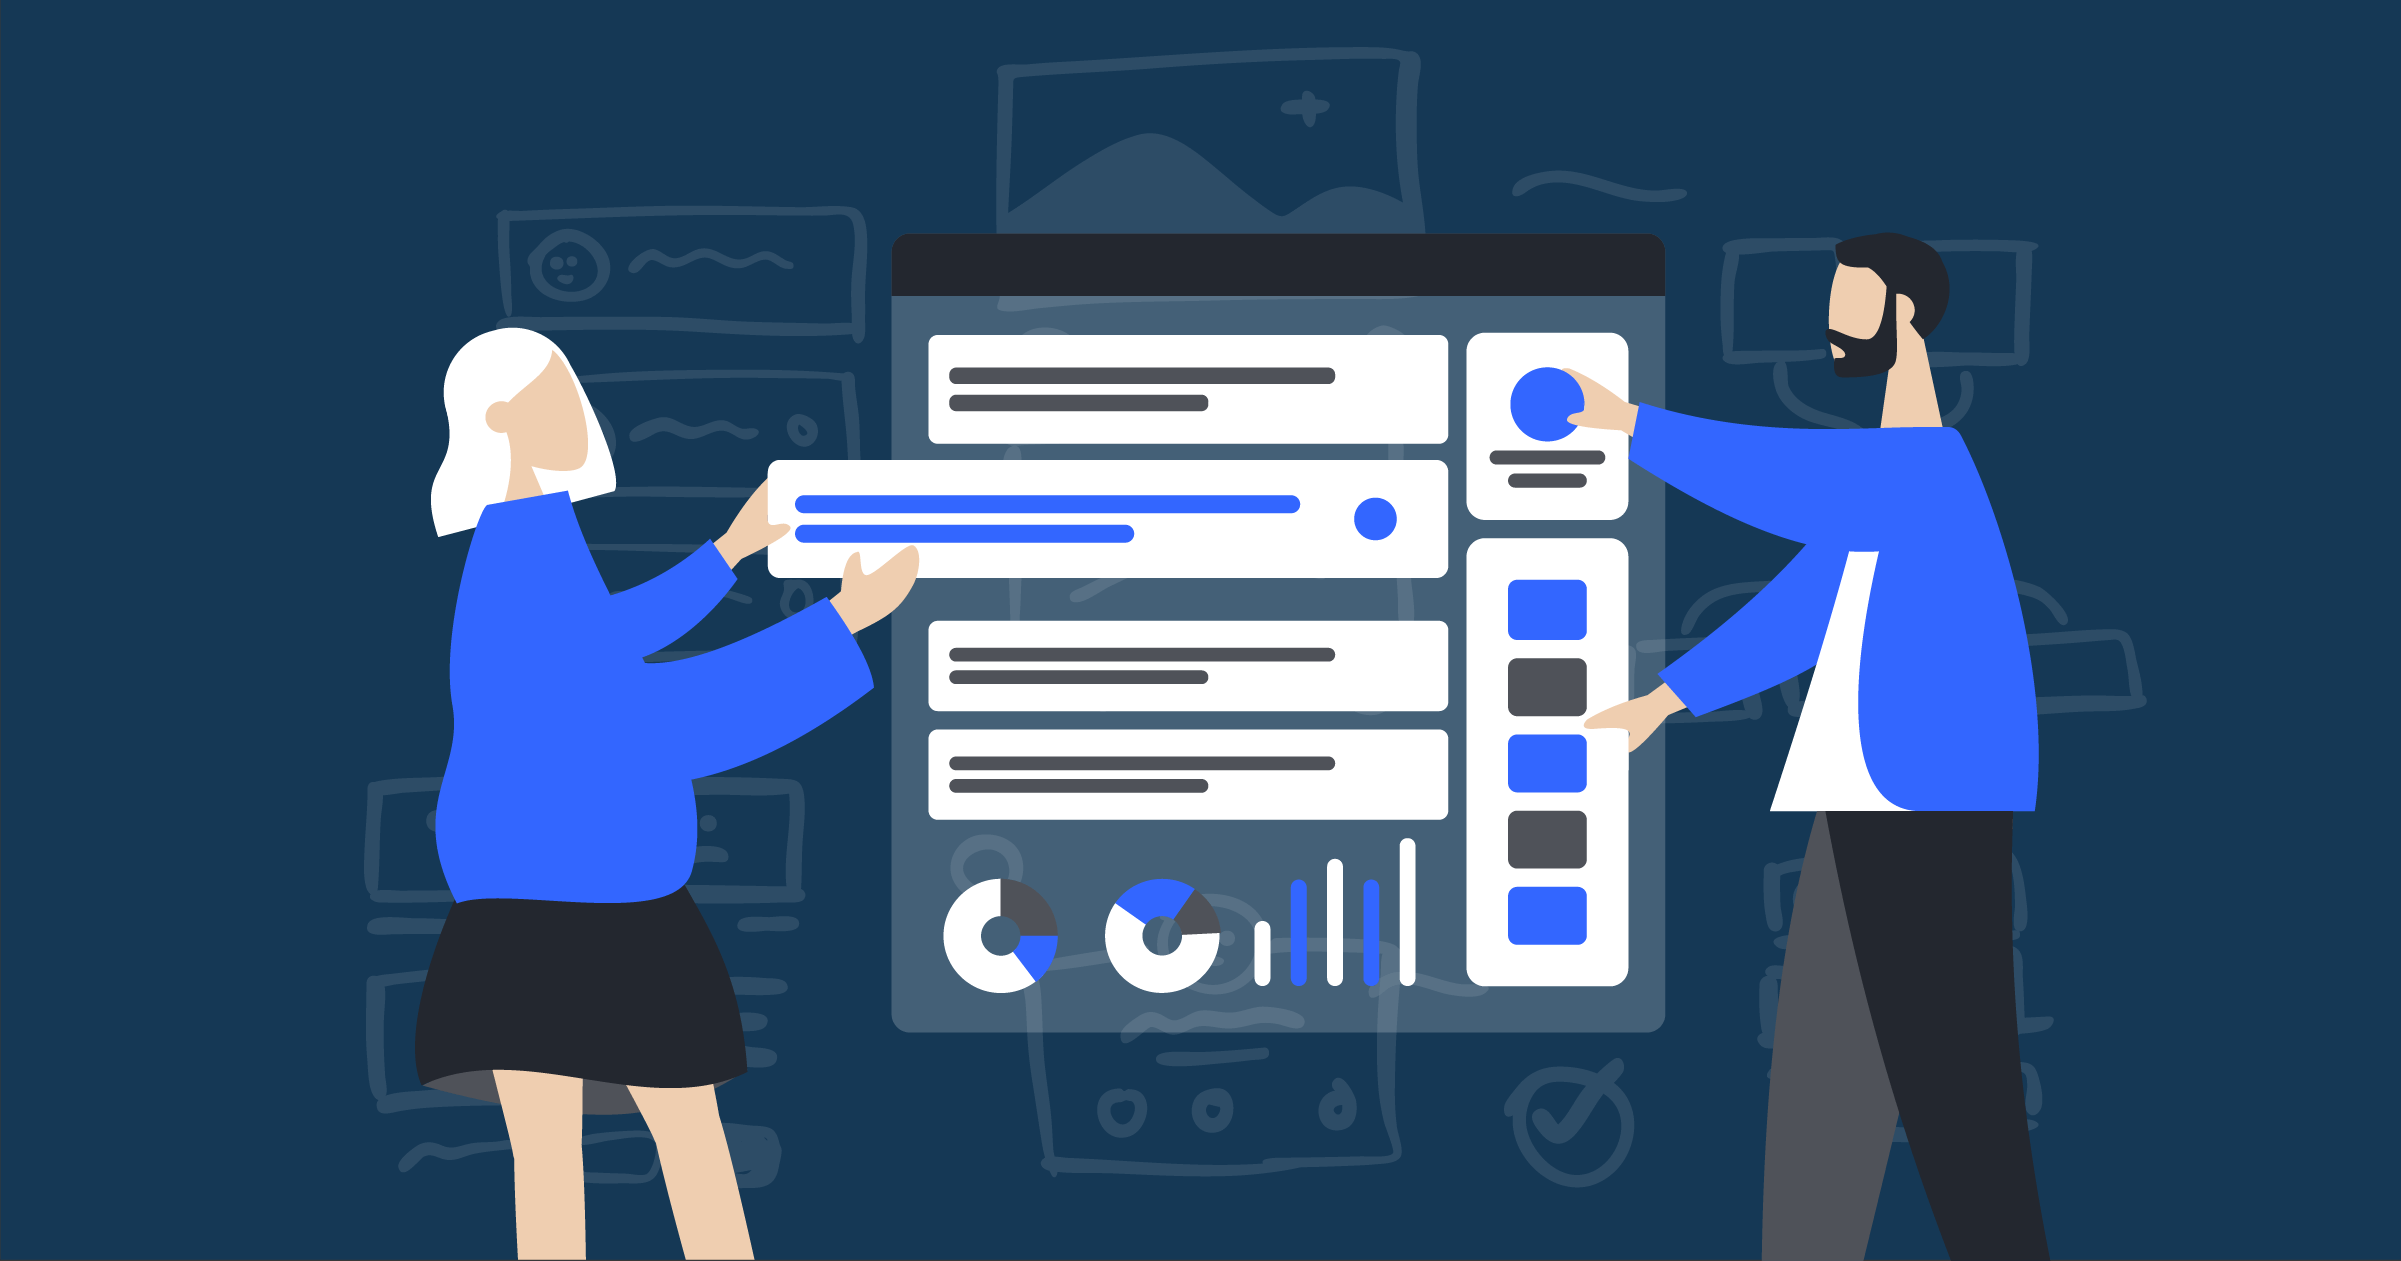 Our newest features help you create more robust experiences faster, provide better interaction data, and manage organizations more systematically.